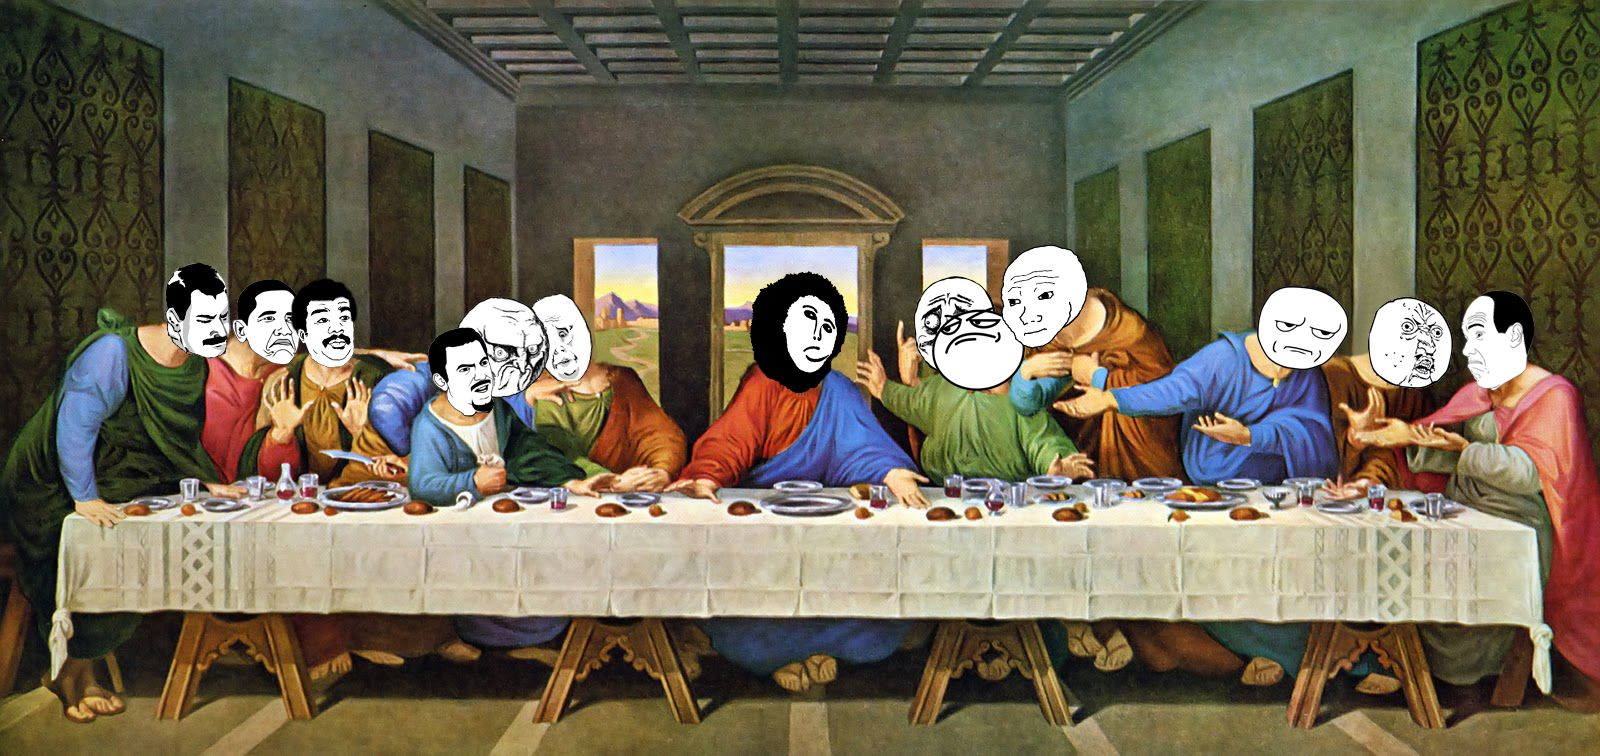 Mask Supper With Images Last Supper